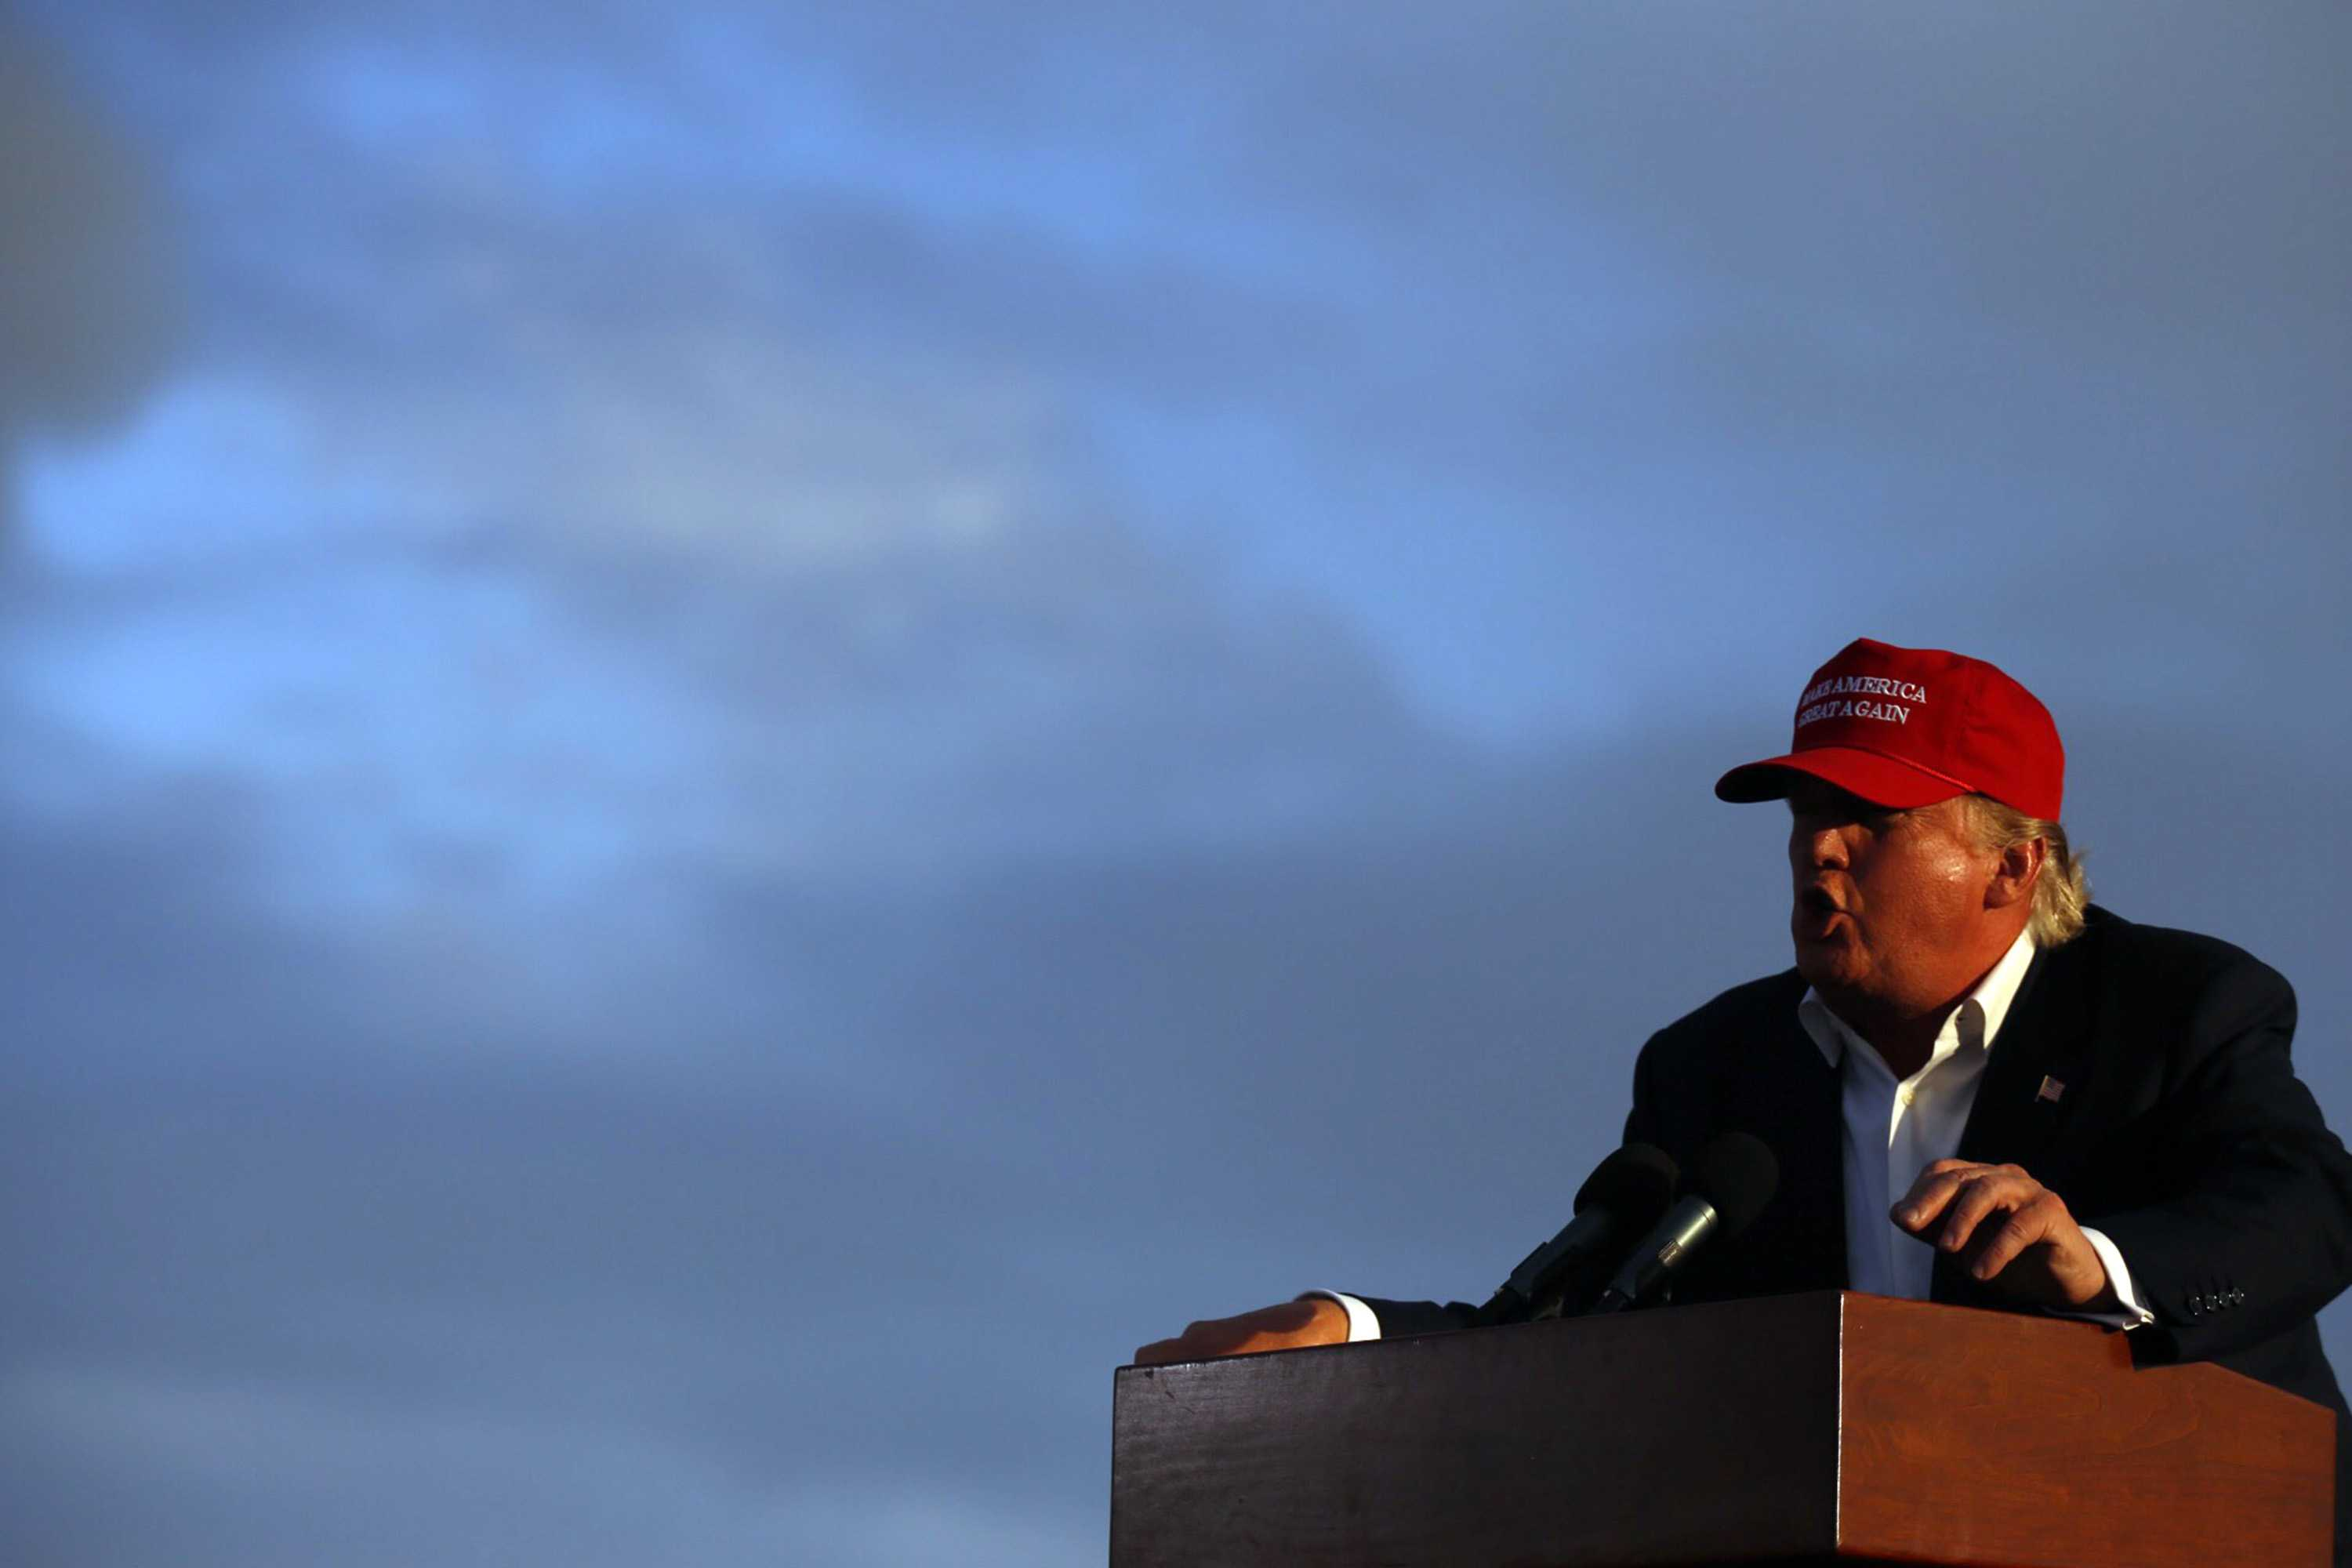 Donald Trump makes a campaign stop aboard the USS Iowa battleship in Los Angeles on Tuesday, Sept. 15, 2015. (Francine Orr/Los Angeles Times/TNS)